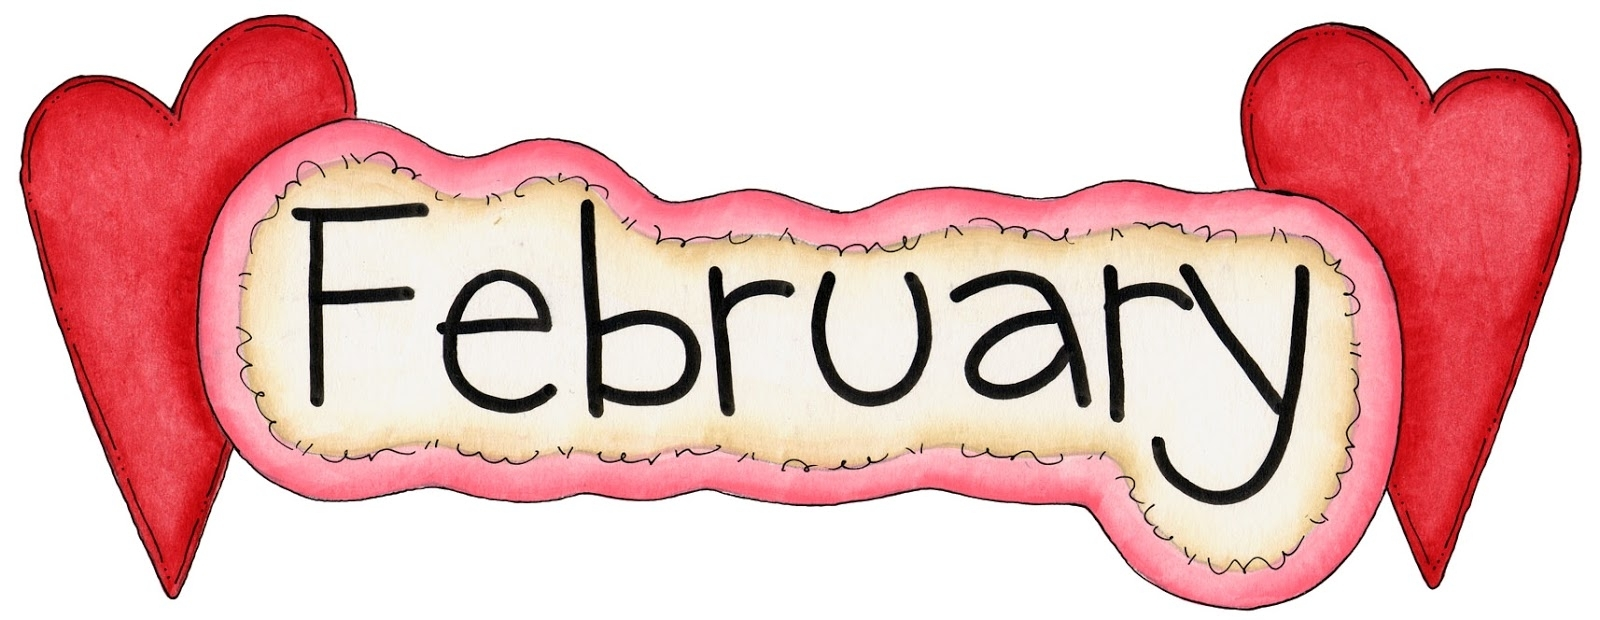 Free Calendar Headings Cliparts, Download Free Clip Art